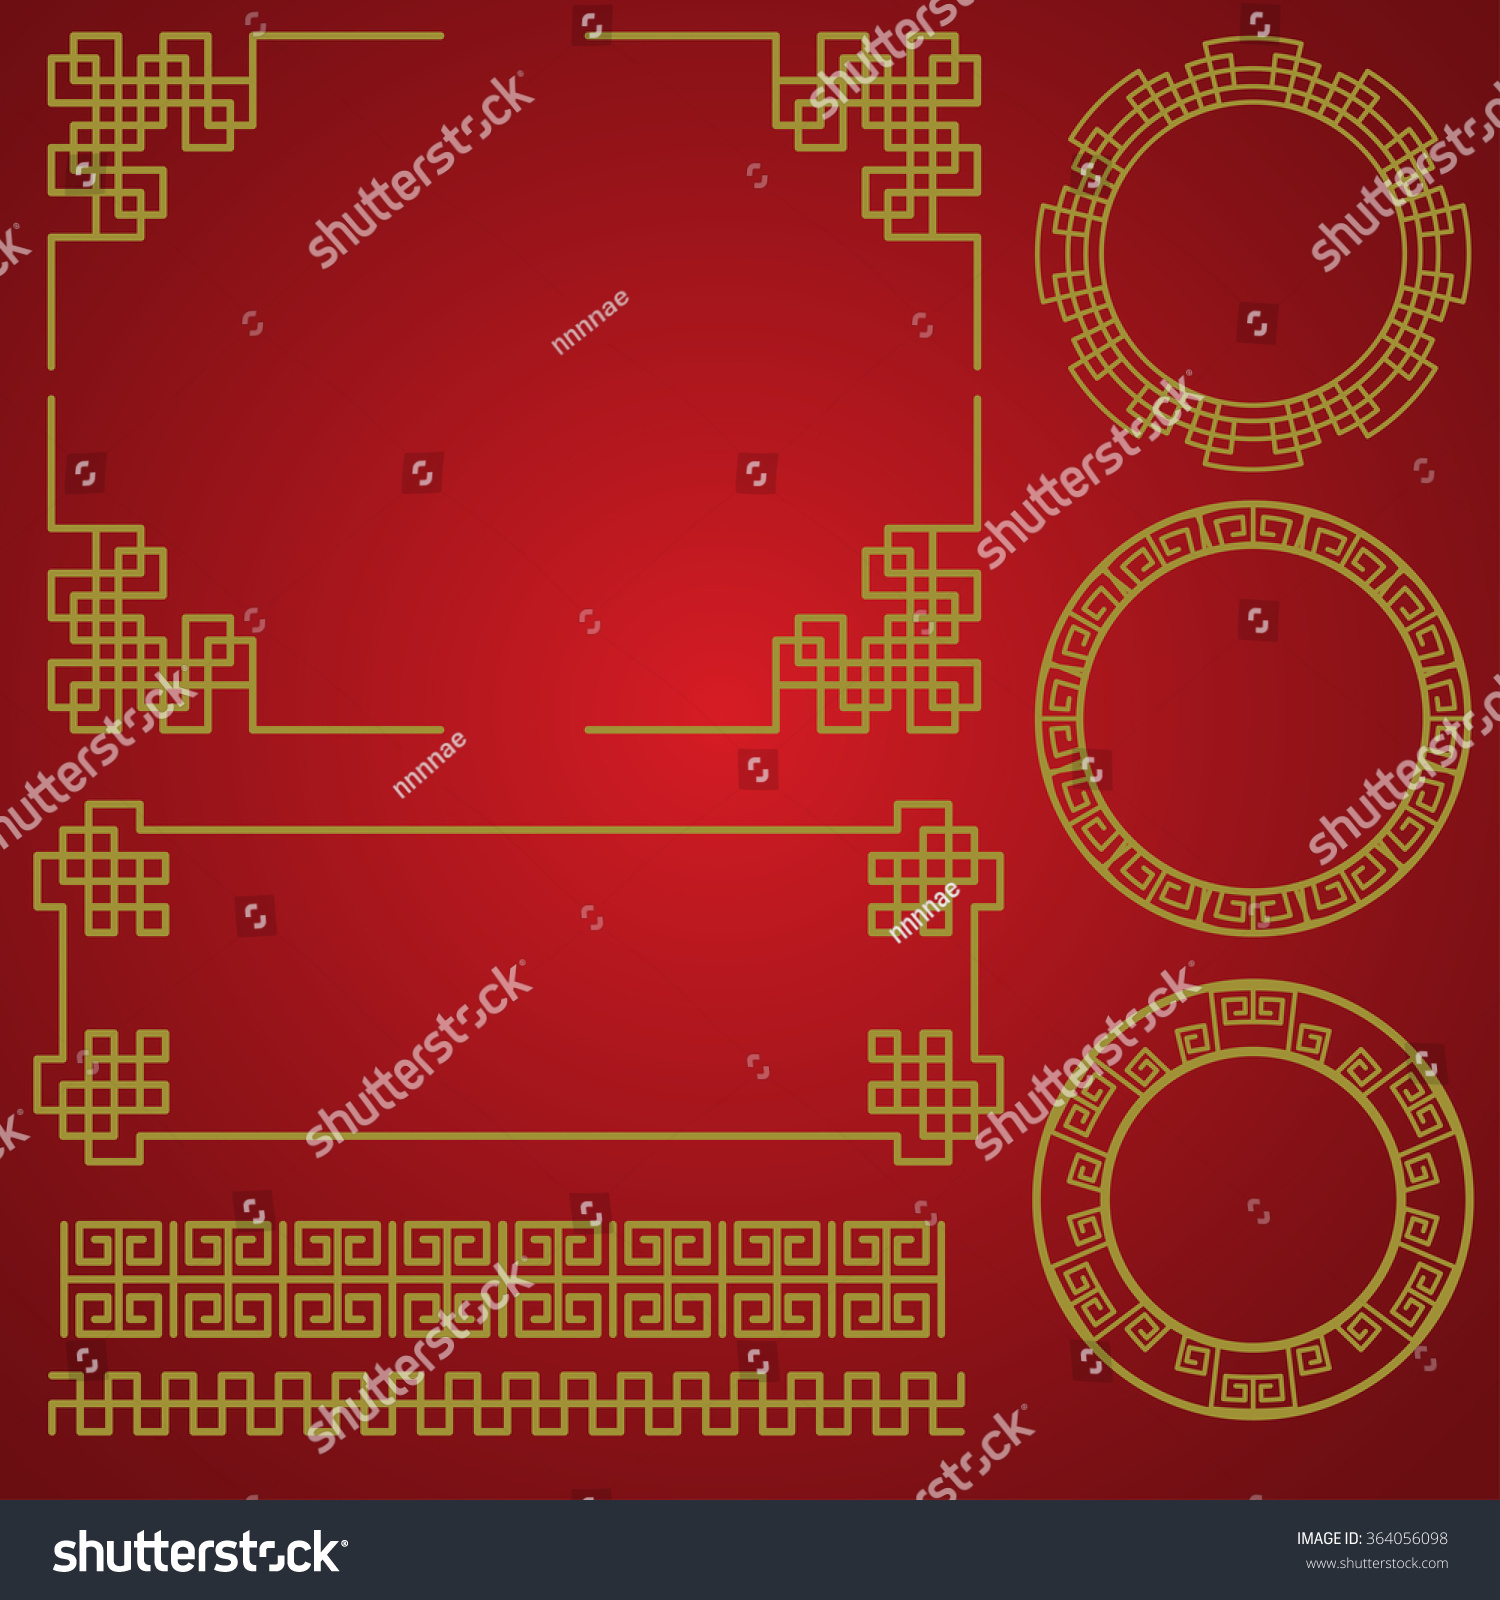 isolated chinese traditional border and frame template gold and red classic chinese pattern vector illustration